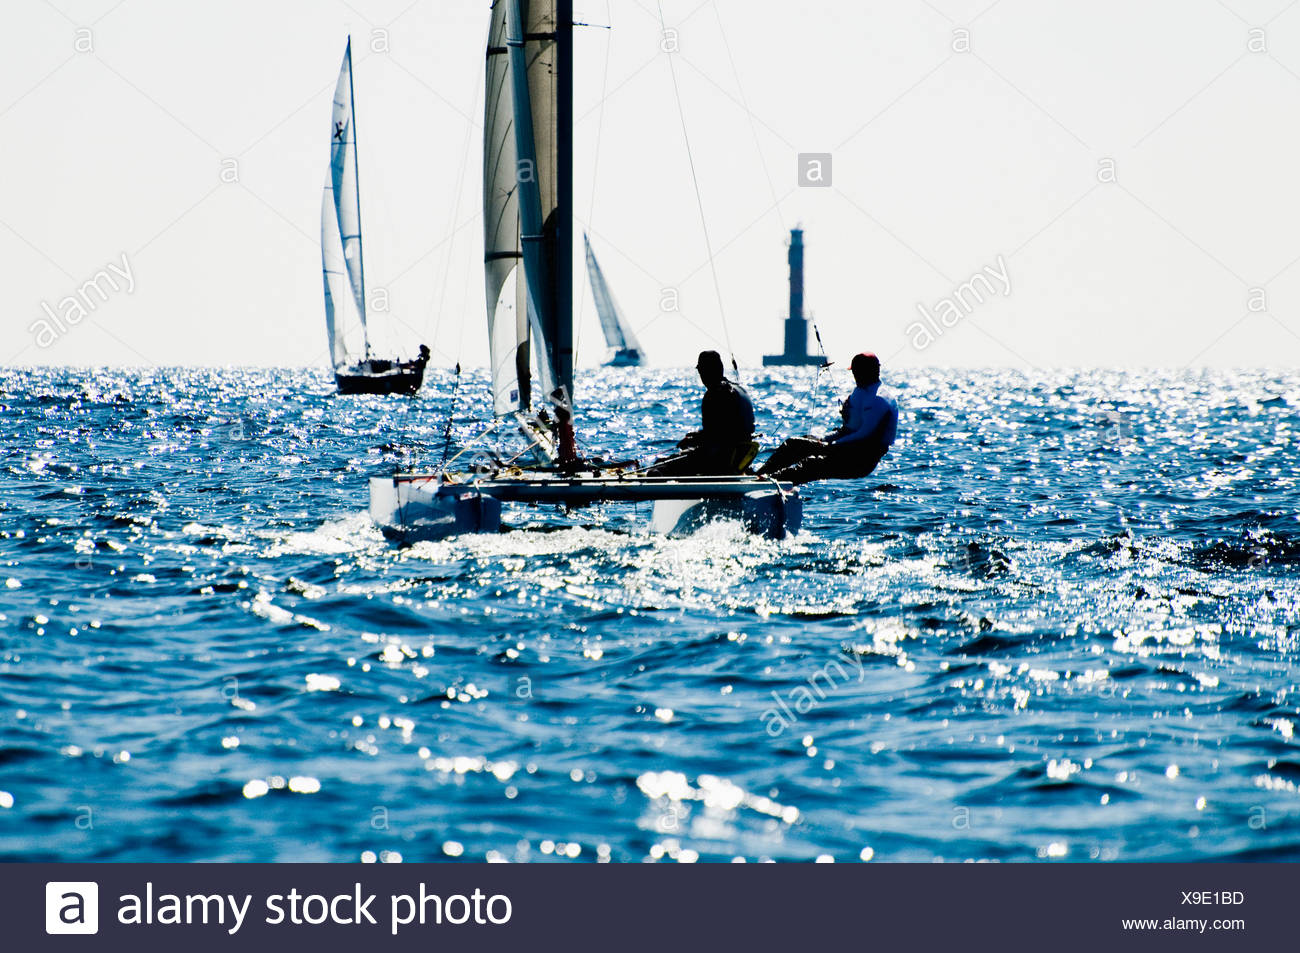 Sailors on the ocean - Stock Image